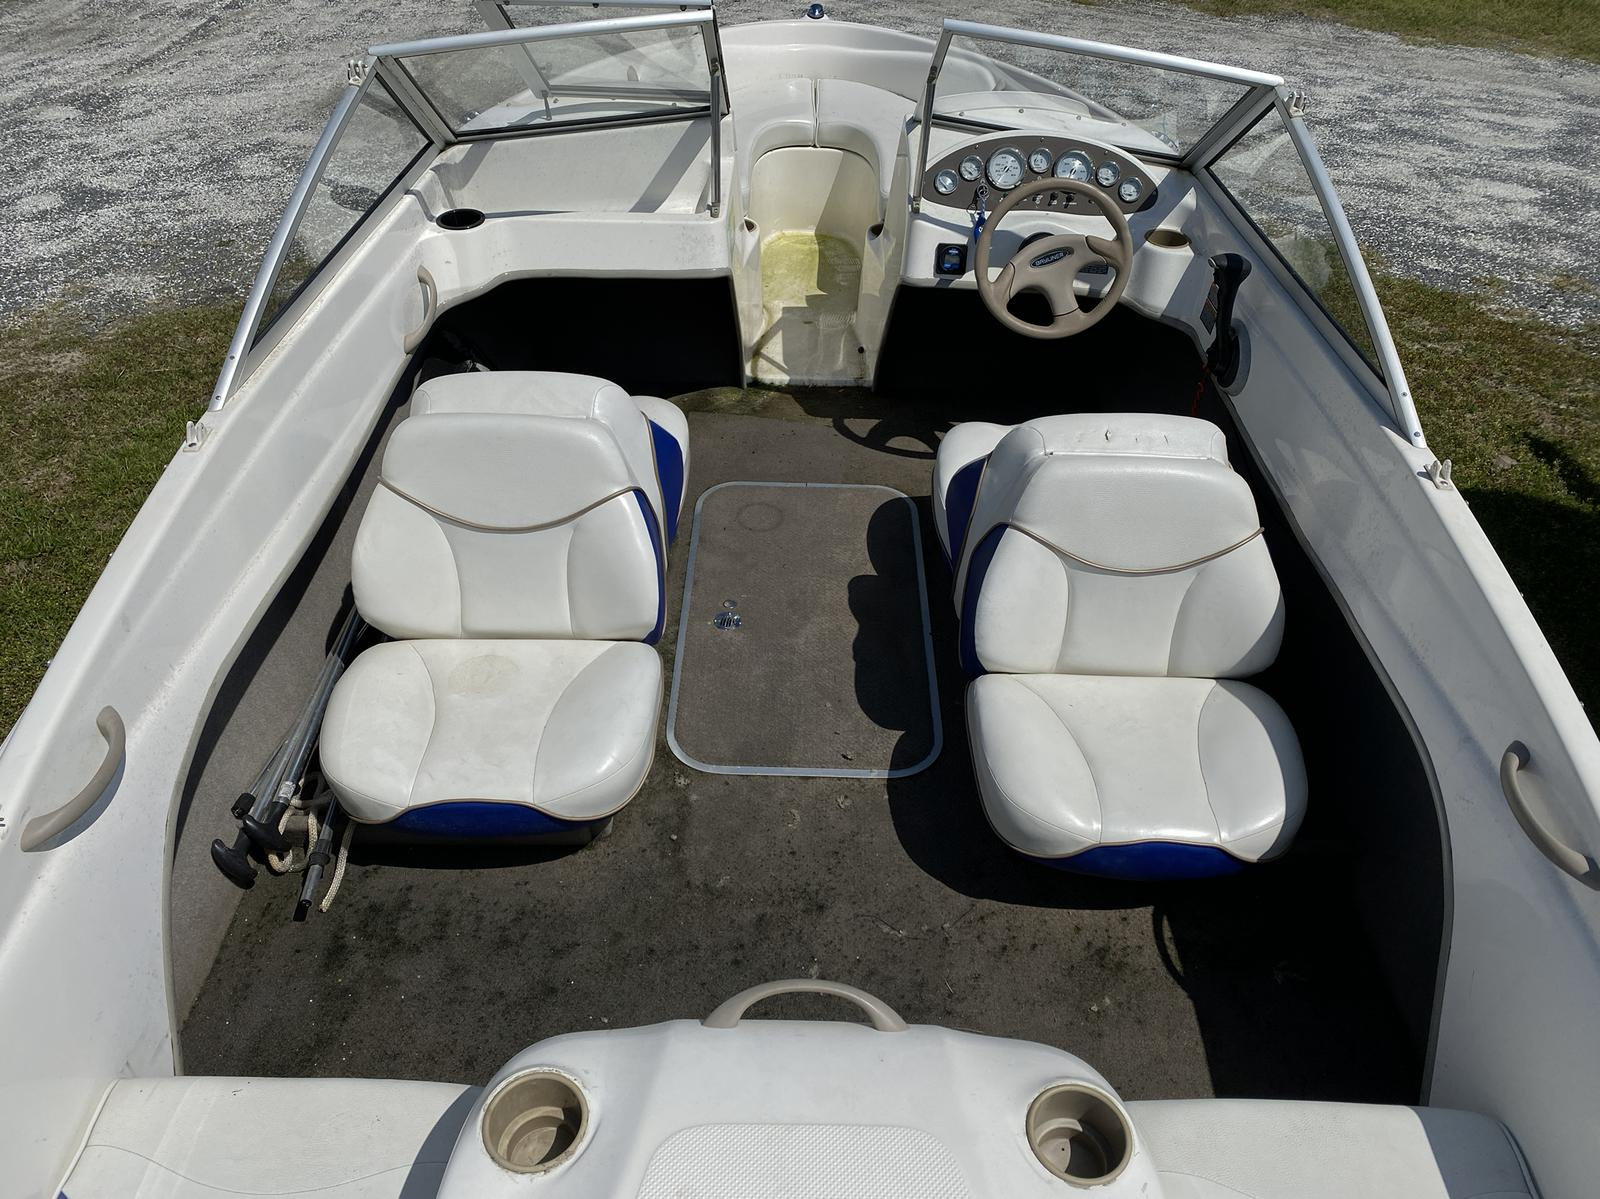 2003 Bayliner boat for sale, model of the boat is 175 Bowrider & Image # 5 of 10